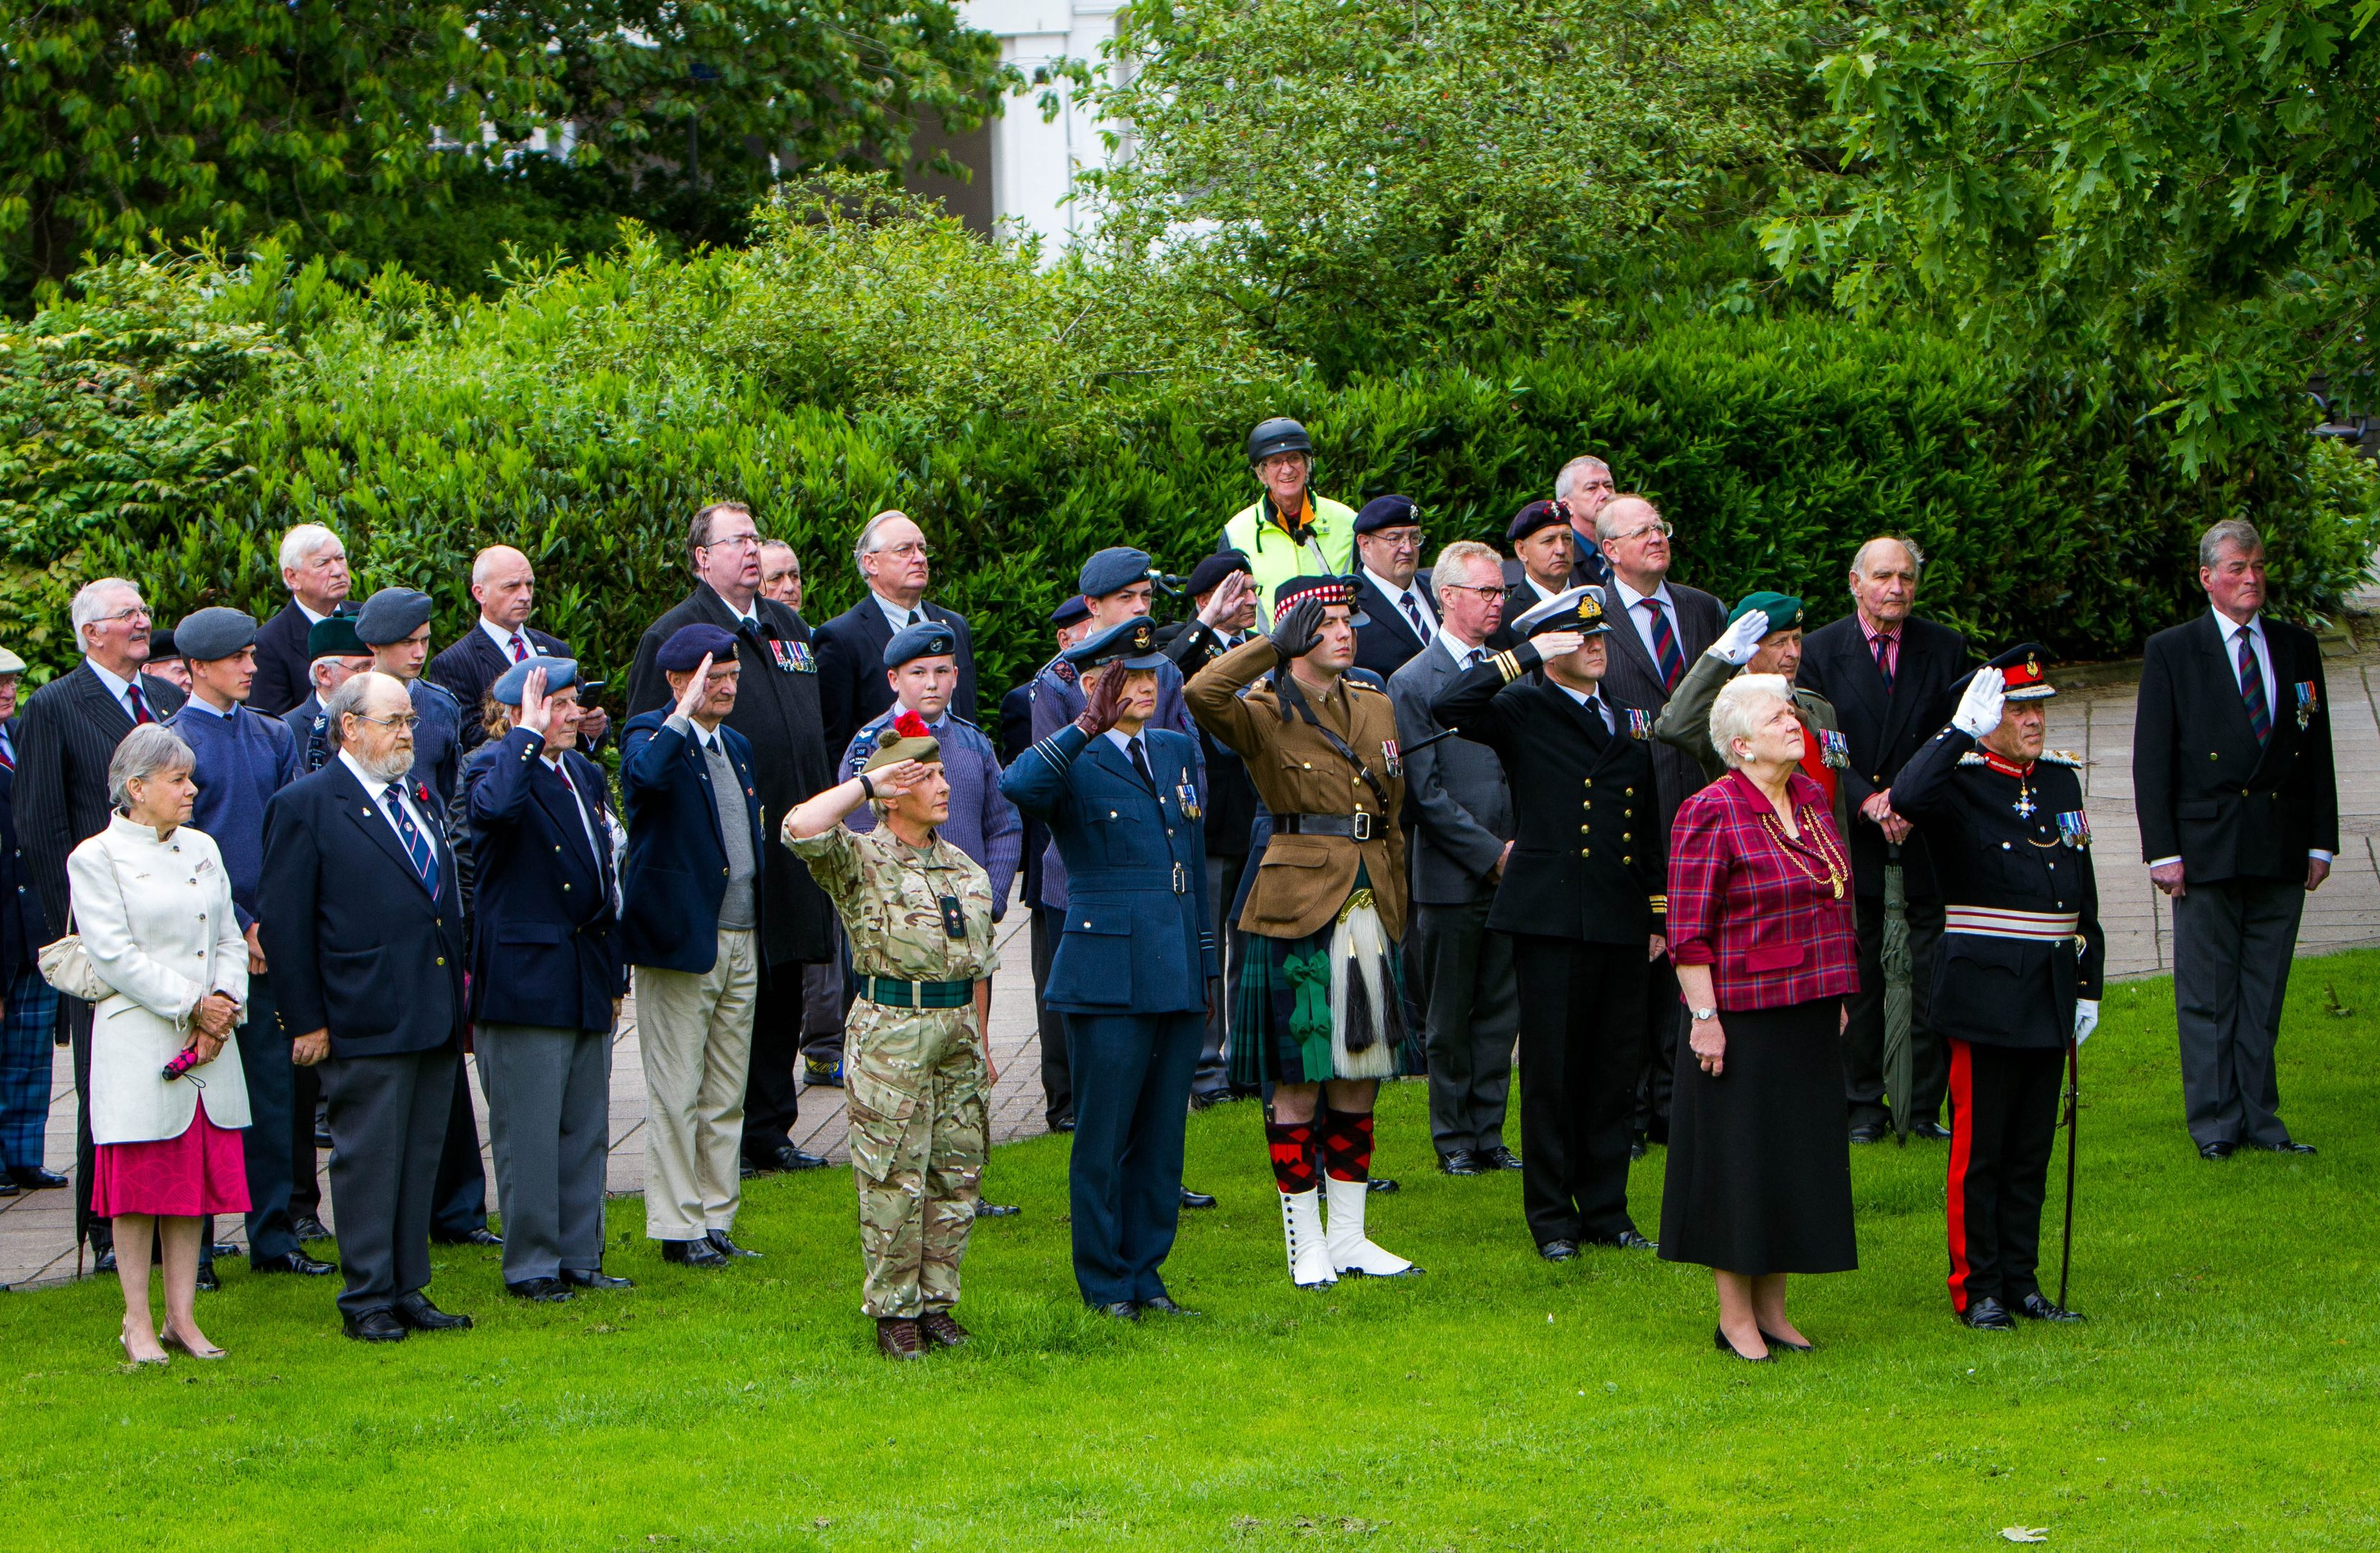 Members of the forces and veterans were joined by Perth and Kinross Council officials at the ceremony.